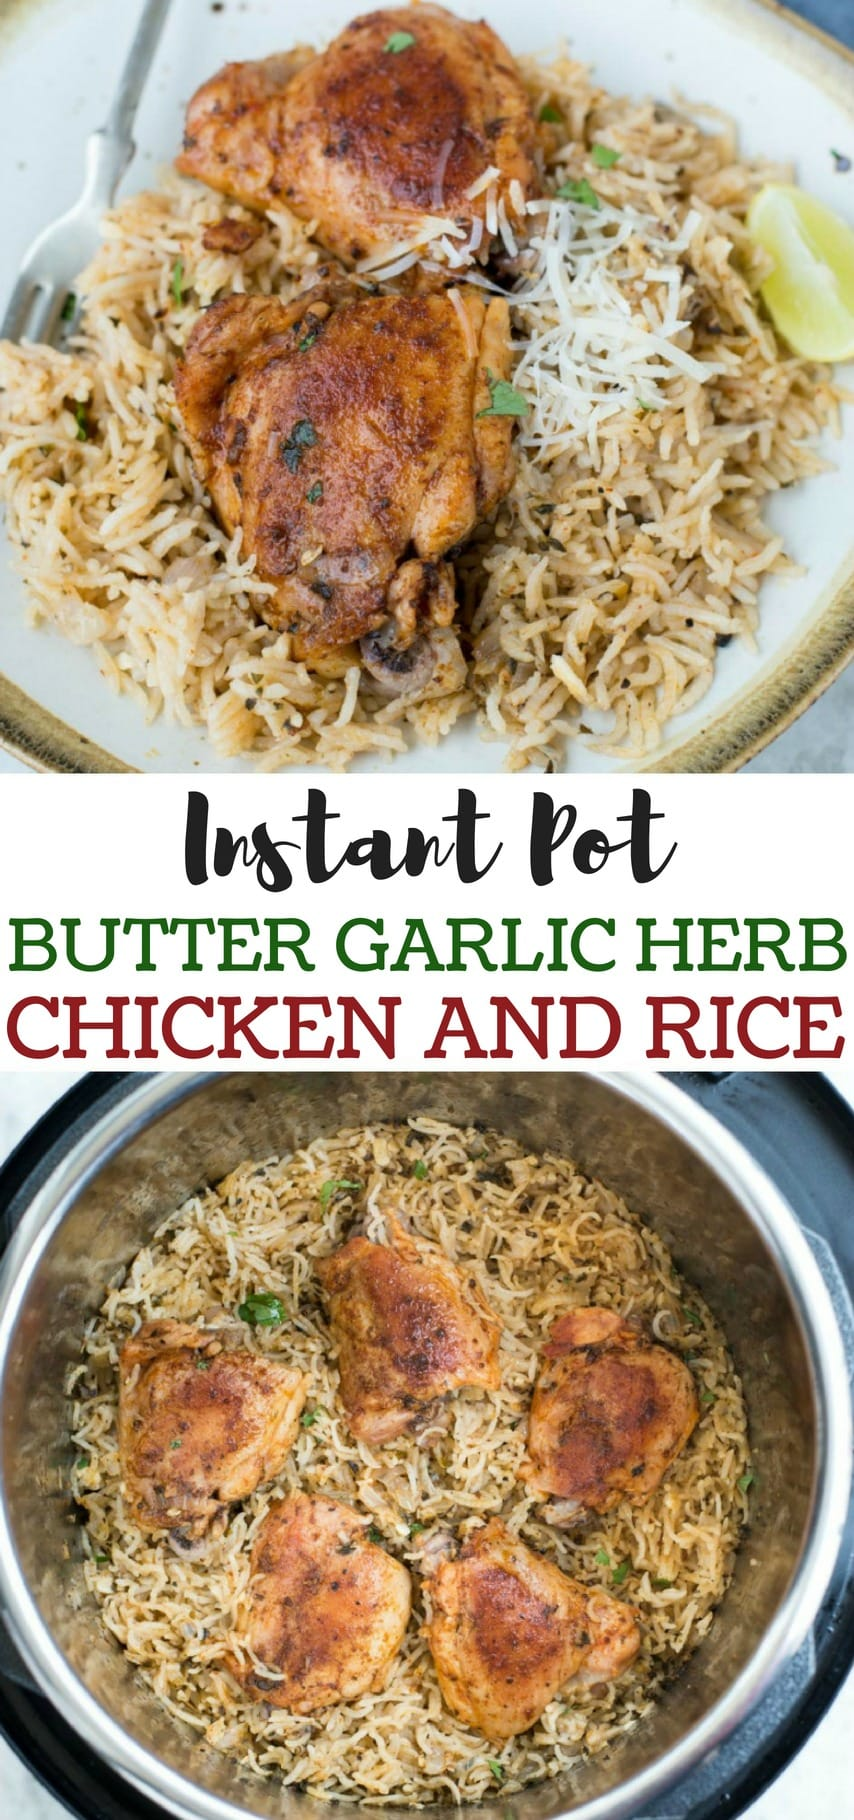 Garlic Herb Chicken and Rice made in the Instant Pot have fluffy buttery rice and Juicy Chicken thighs. This Instant Pot Garlic Herb Chicken and Rice is a wholesome dinner that entire family will love.